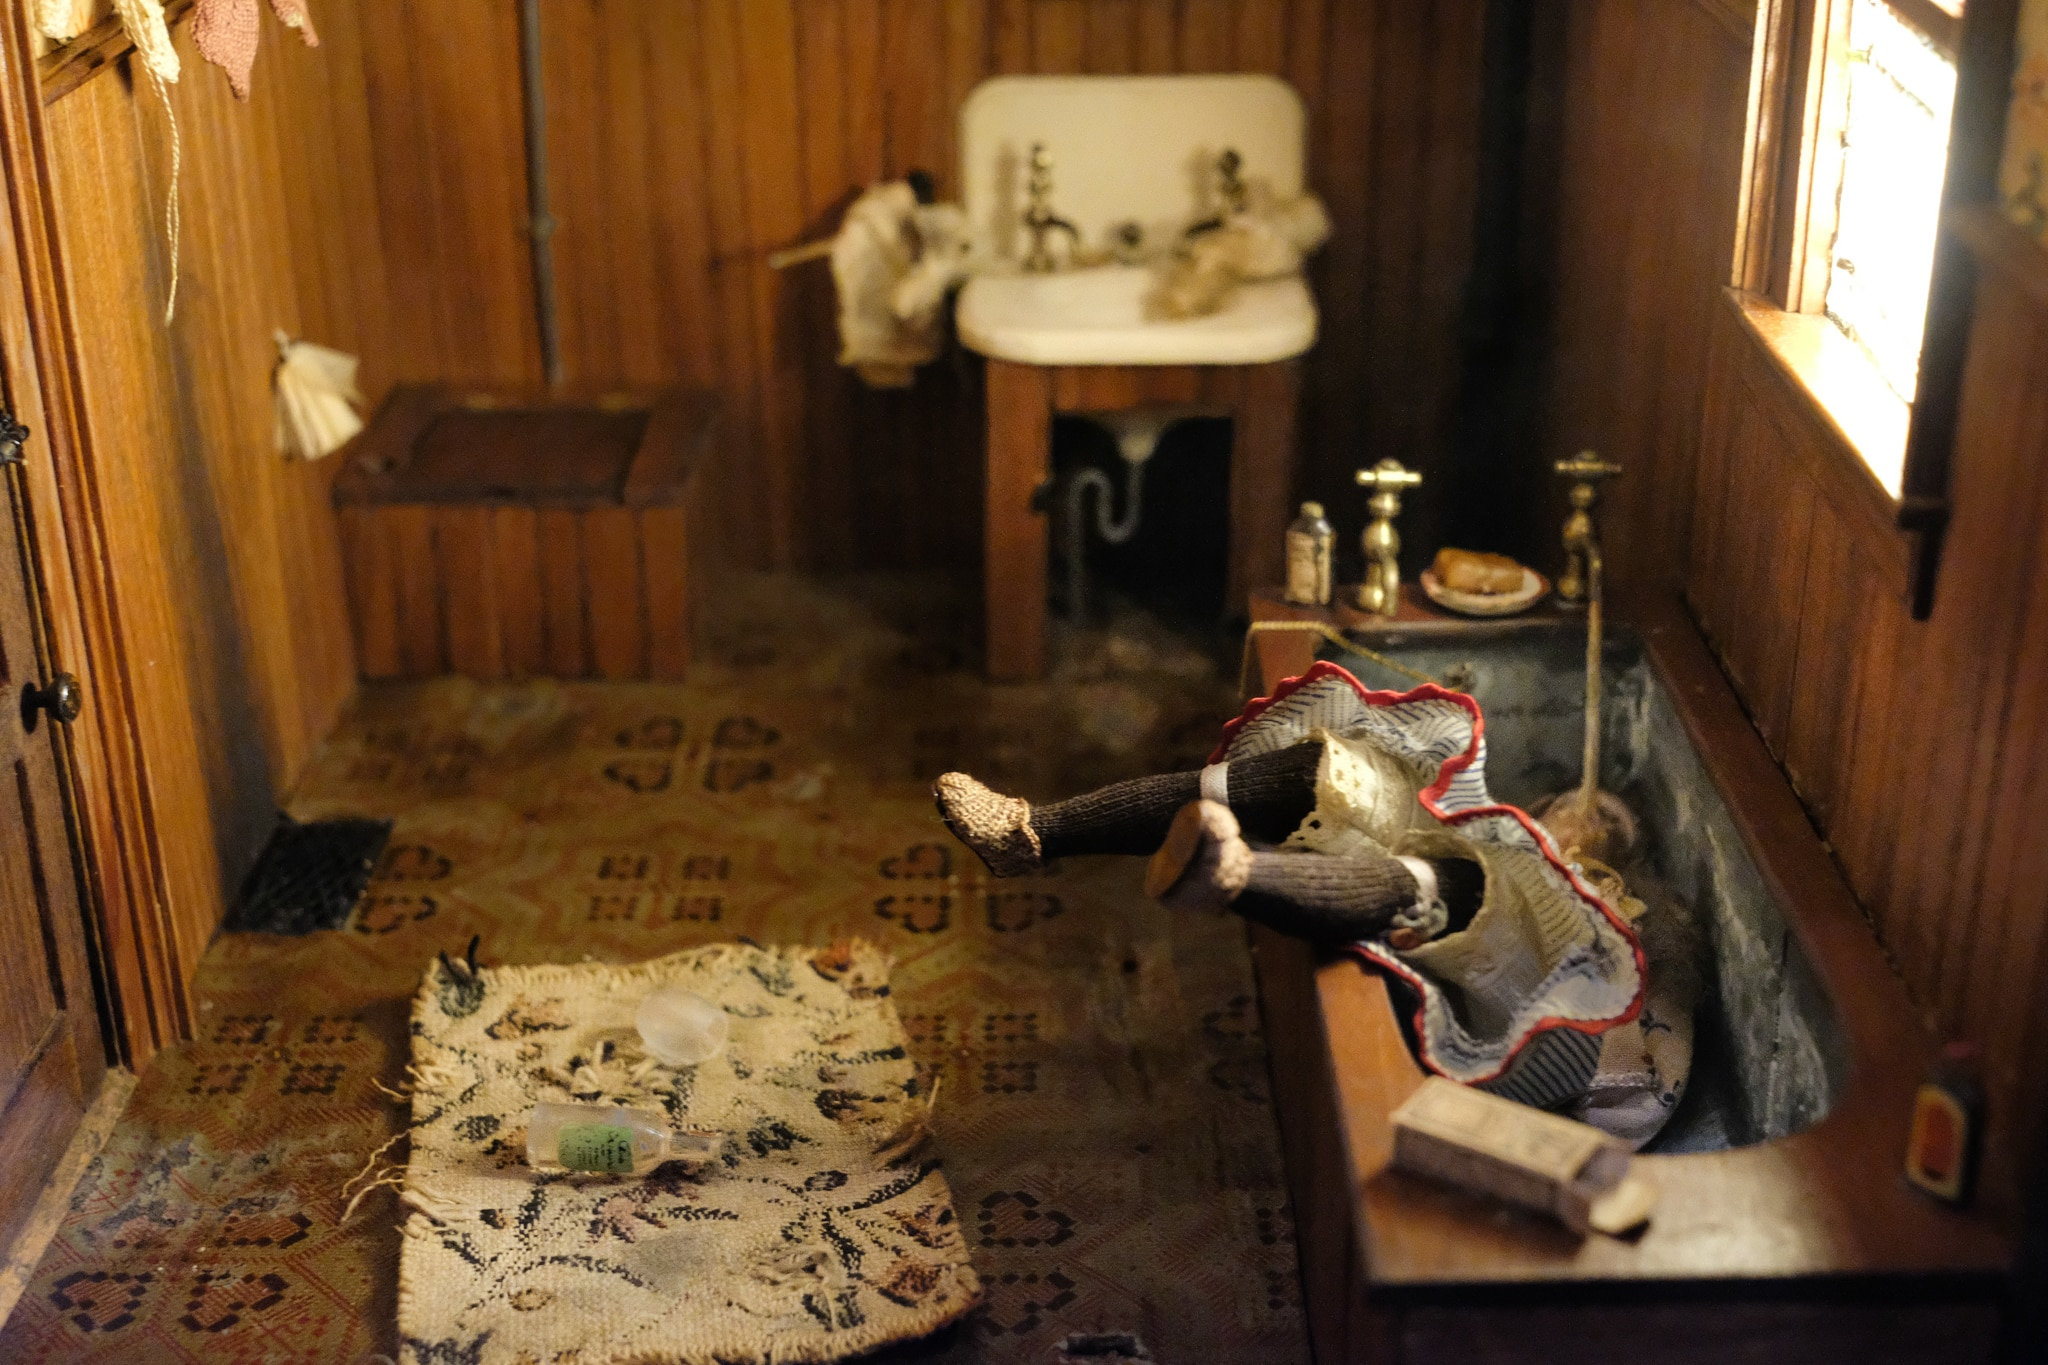 Miniature scene of woman drowned in bathtub (State Dept./S.L. Brukbacher)